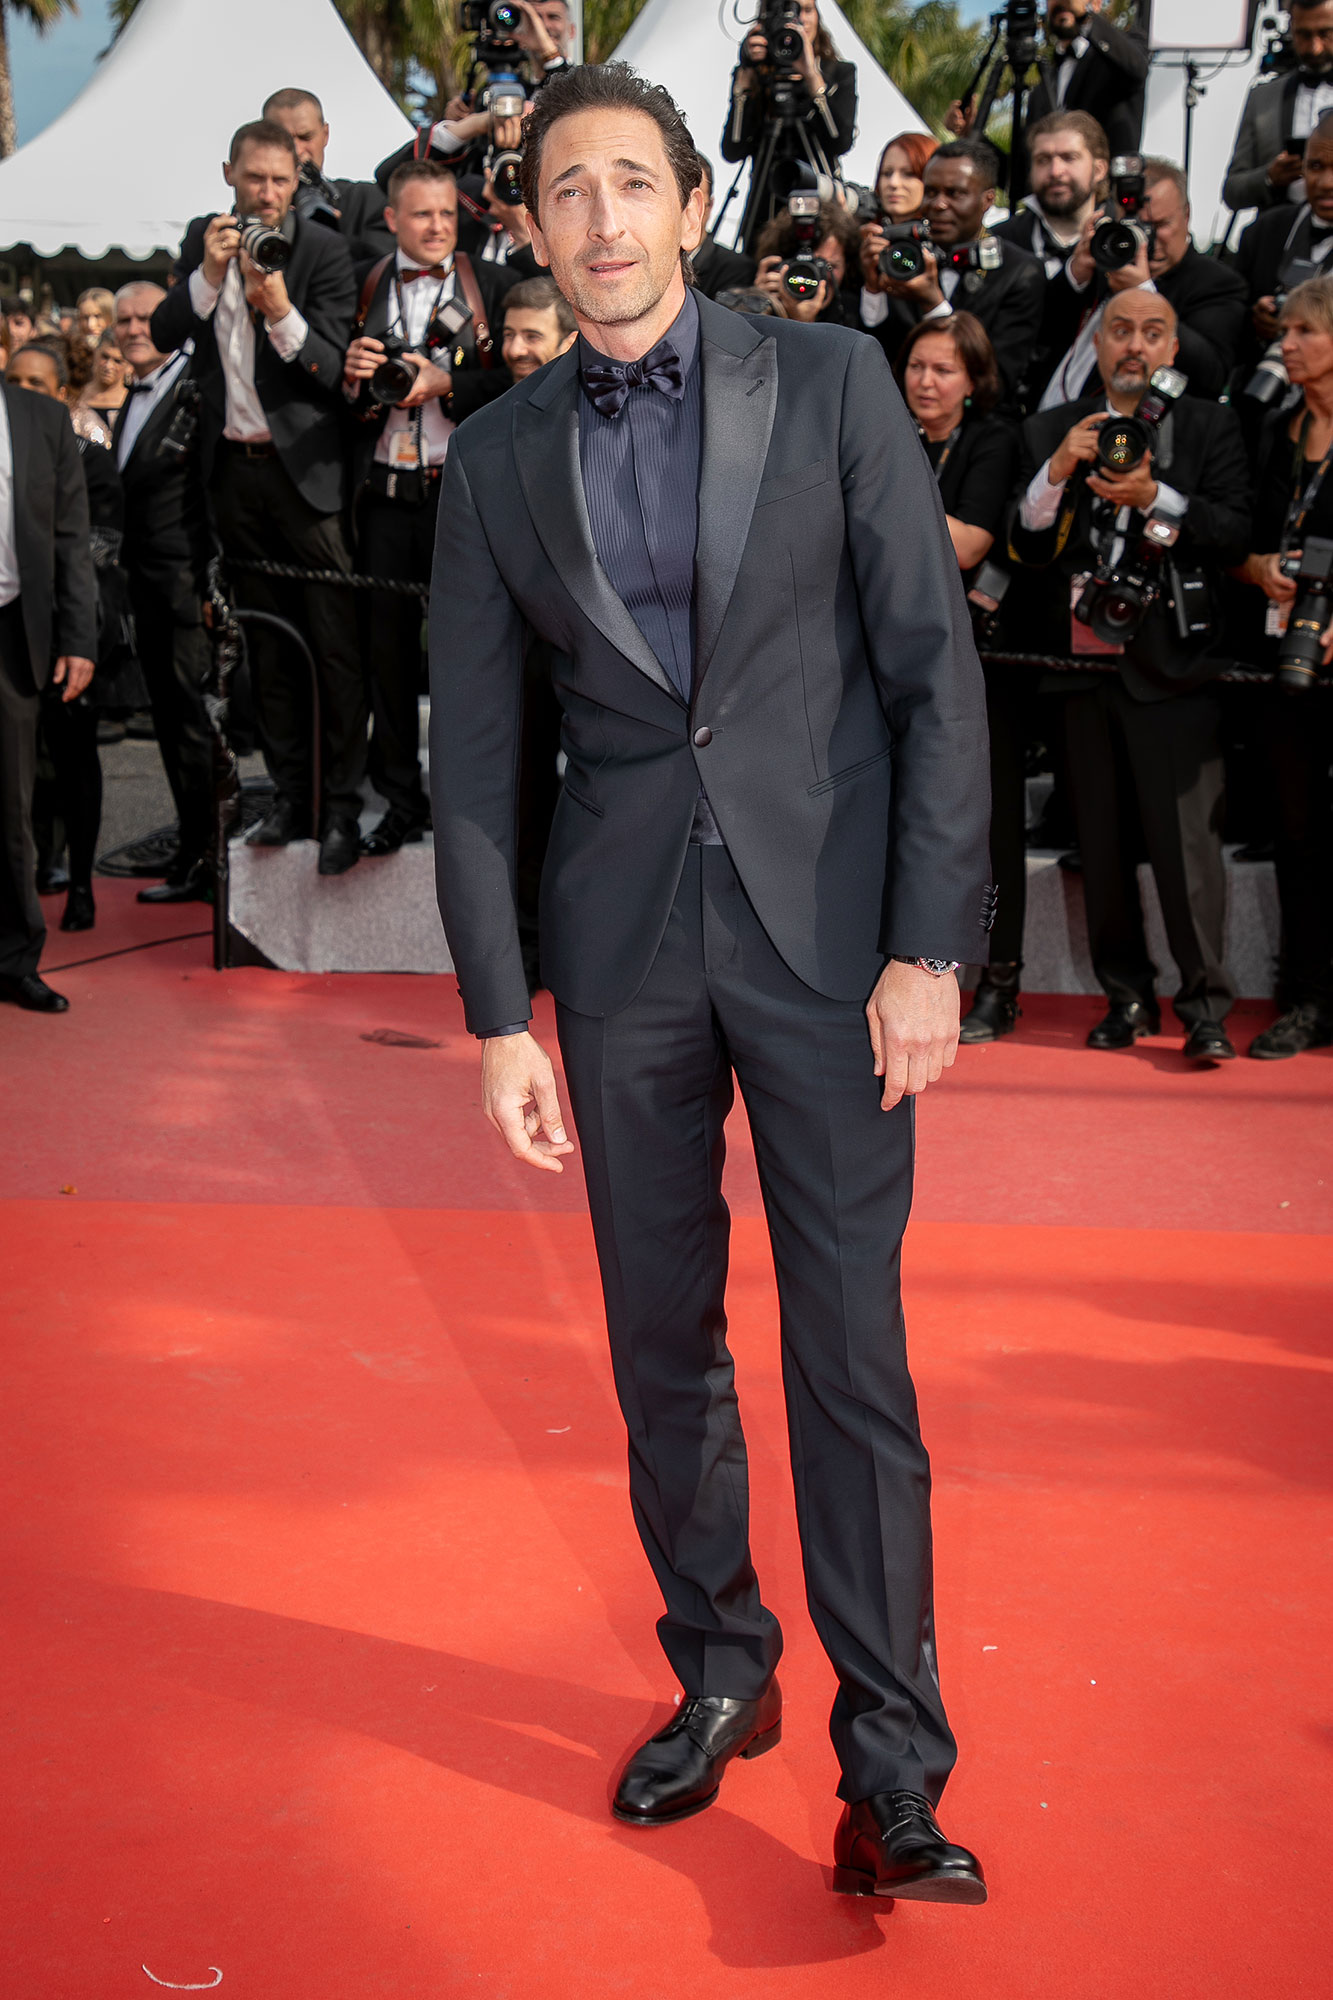 Adrian Brody Cannes Film Festival 2019 Most Stylish Guys Red Carpet - The actor made the case for monochromatic dressing on the Once Upon a Time in Hollywood red carpet on Tuesday, May 21.